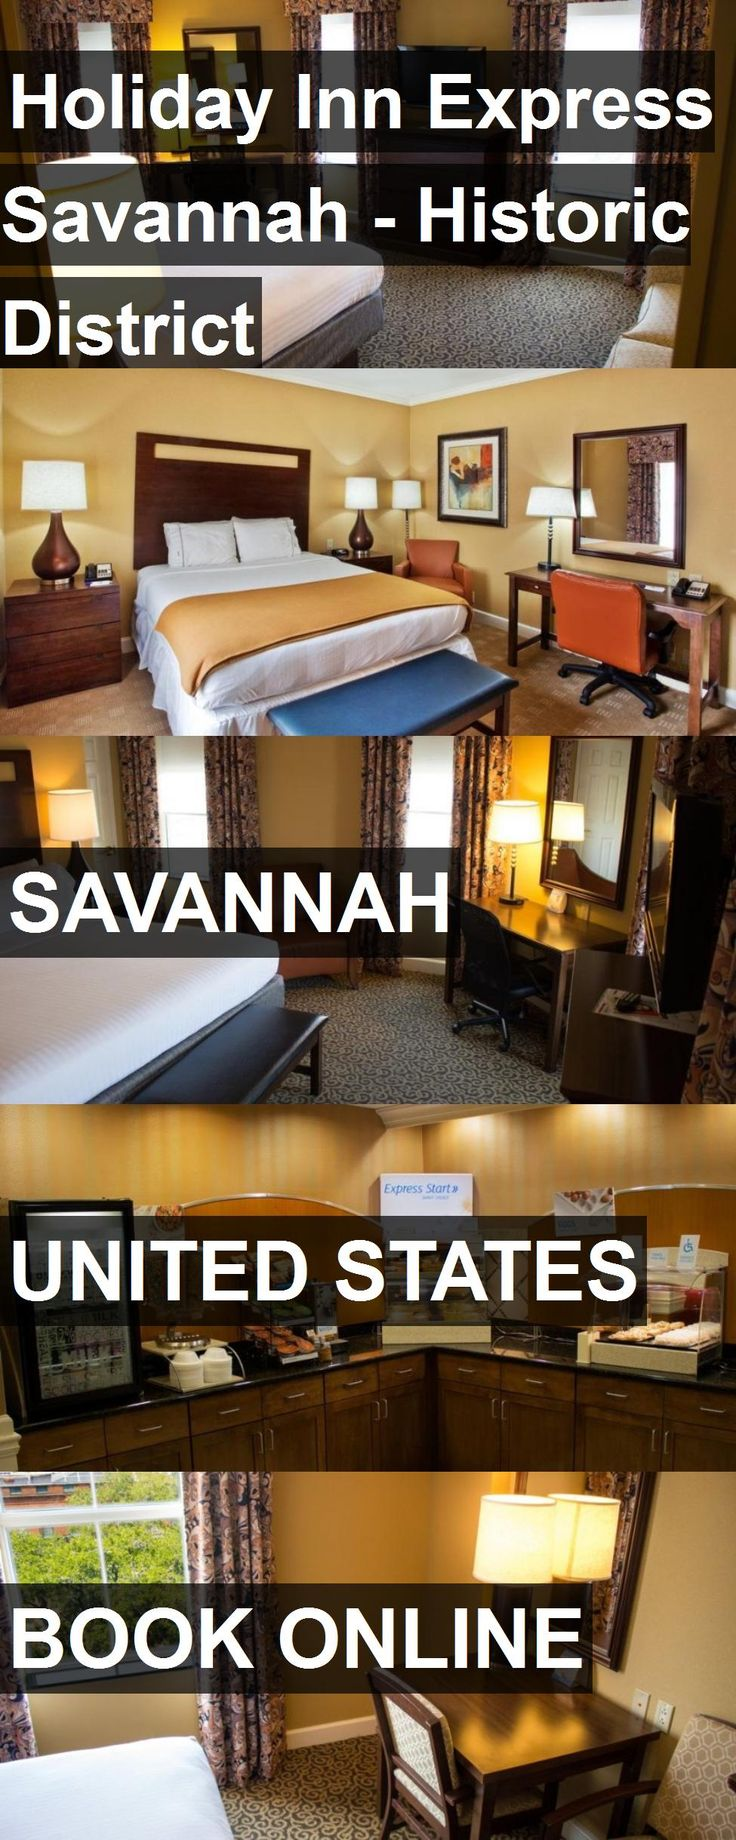 Hotel Holiday Inn Express Savannah - Historic District in Savannah, United States. For more information, photos, reviews and best prices please follow the link. #UnitedStates #Savannah #HolidayInnExpressSavannah-HistoricDistrict #hotel #travel #vacation